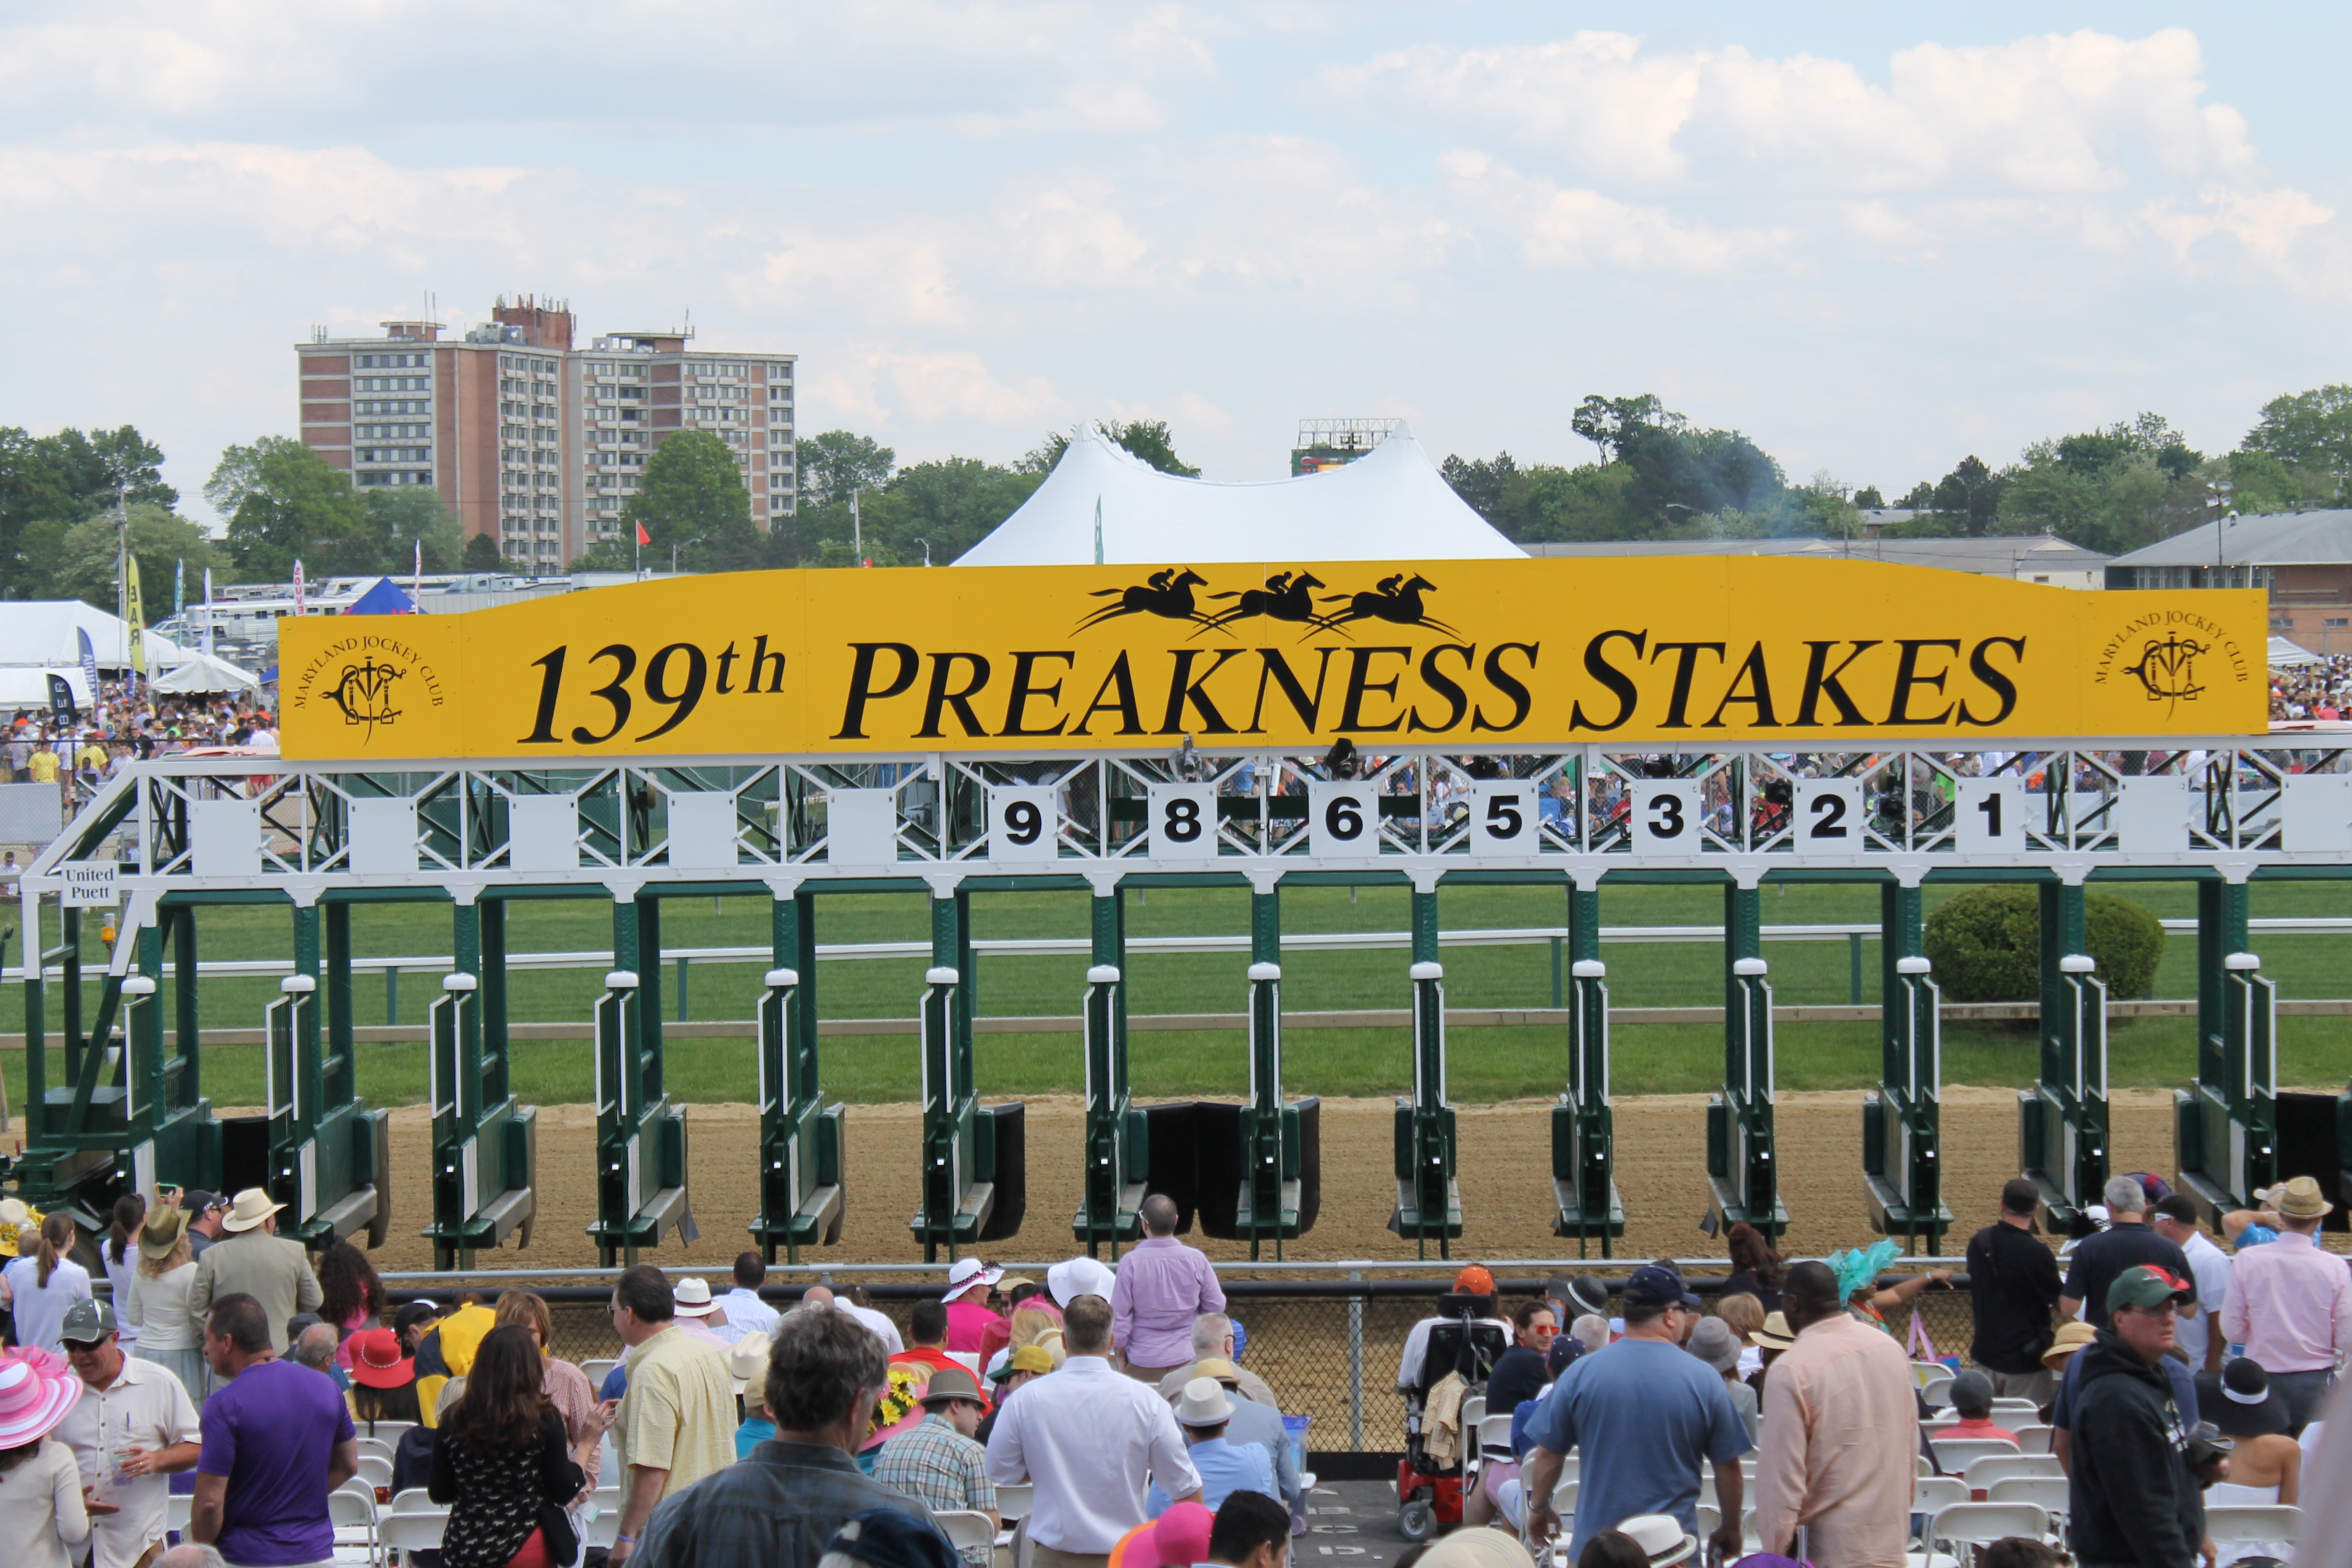 The Preakness.